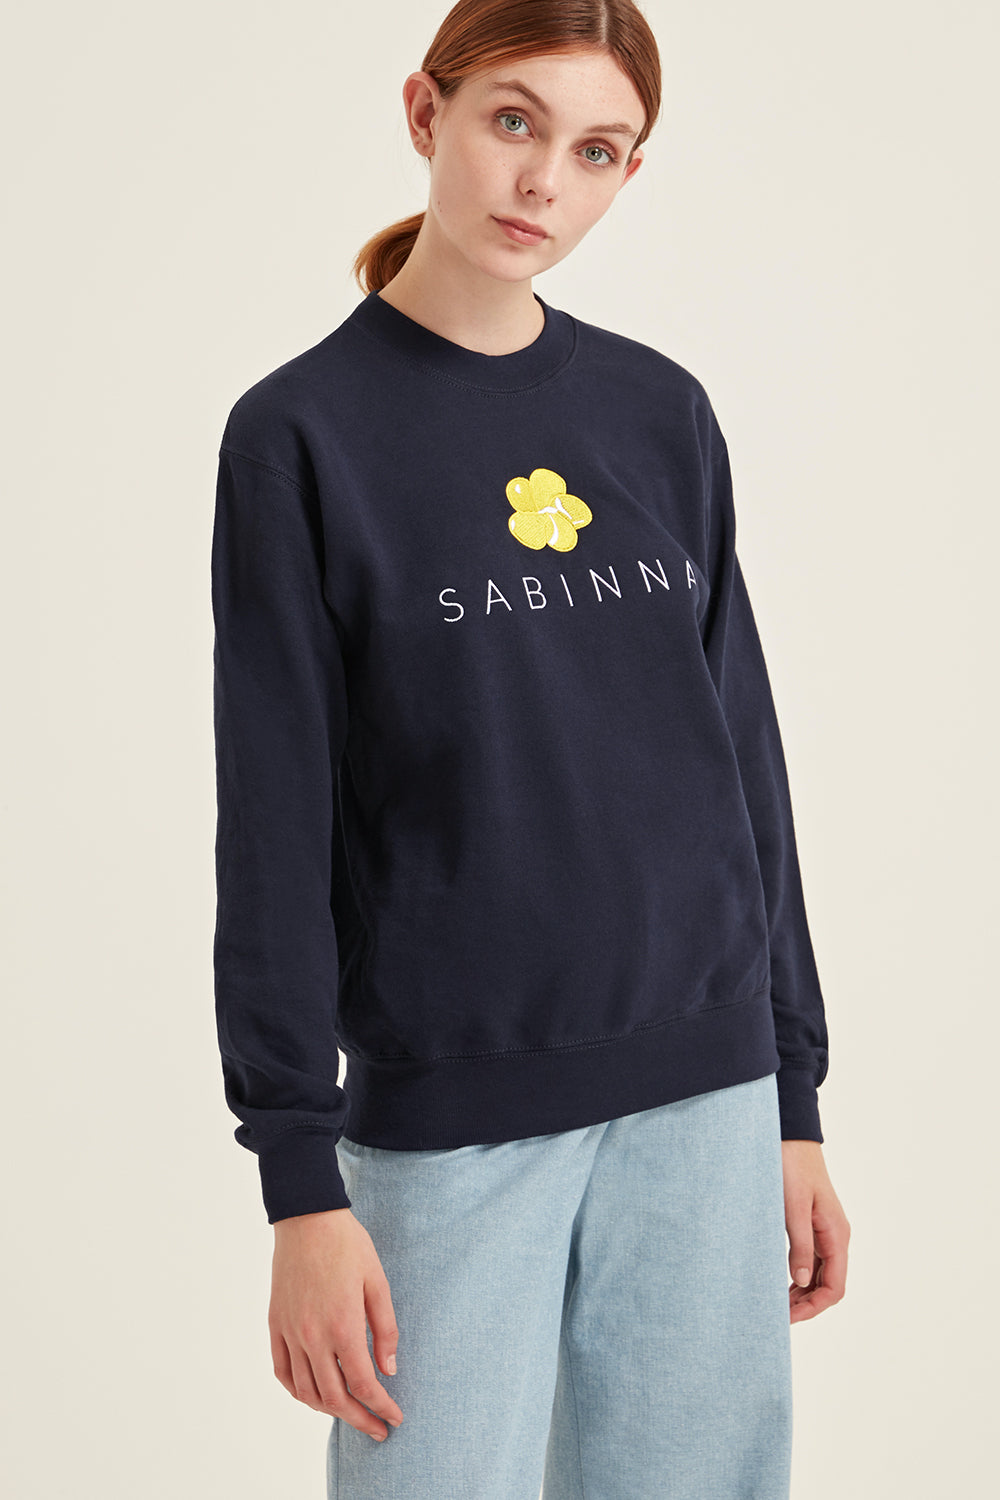 Sabinna Jumper Navy